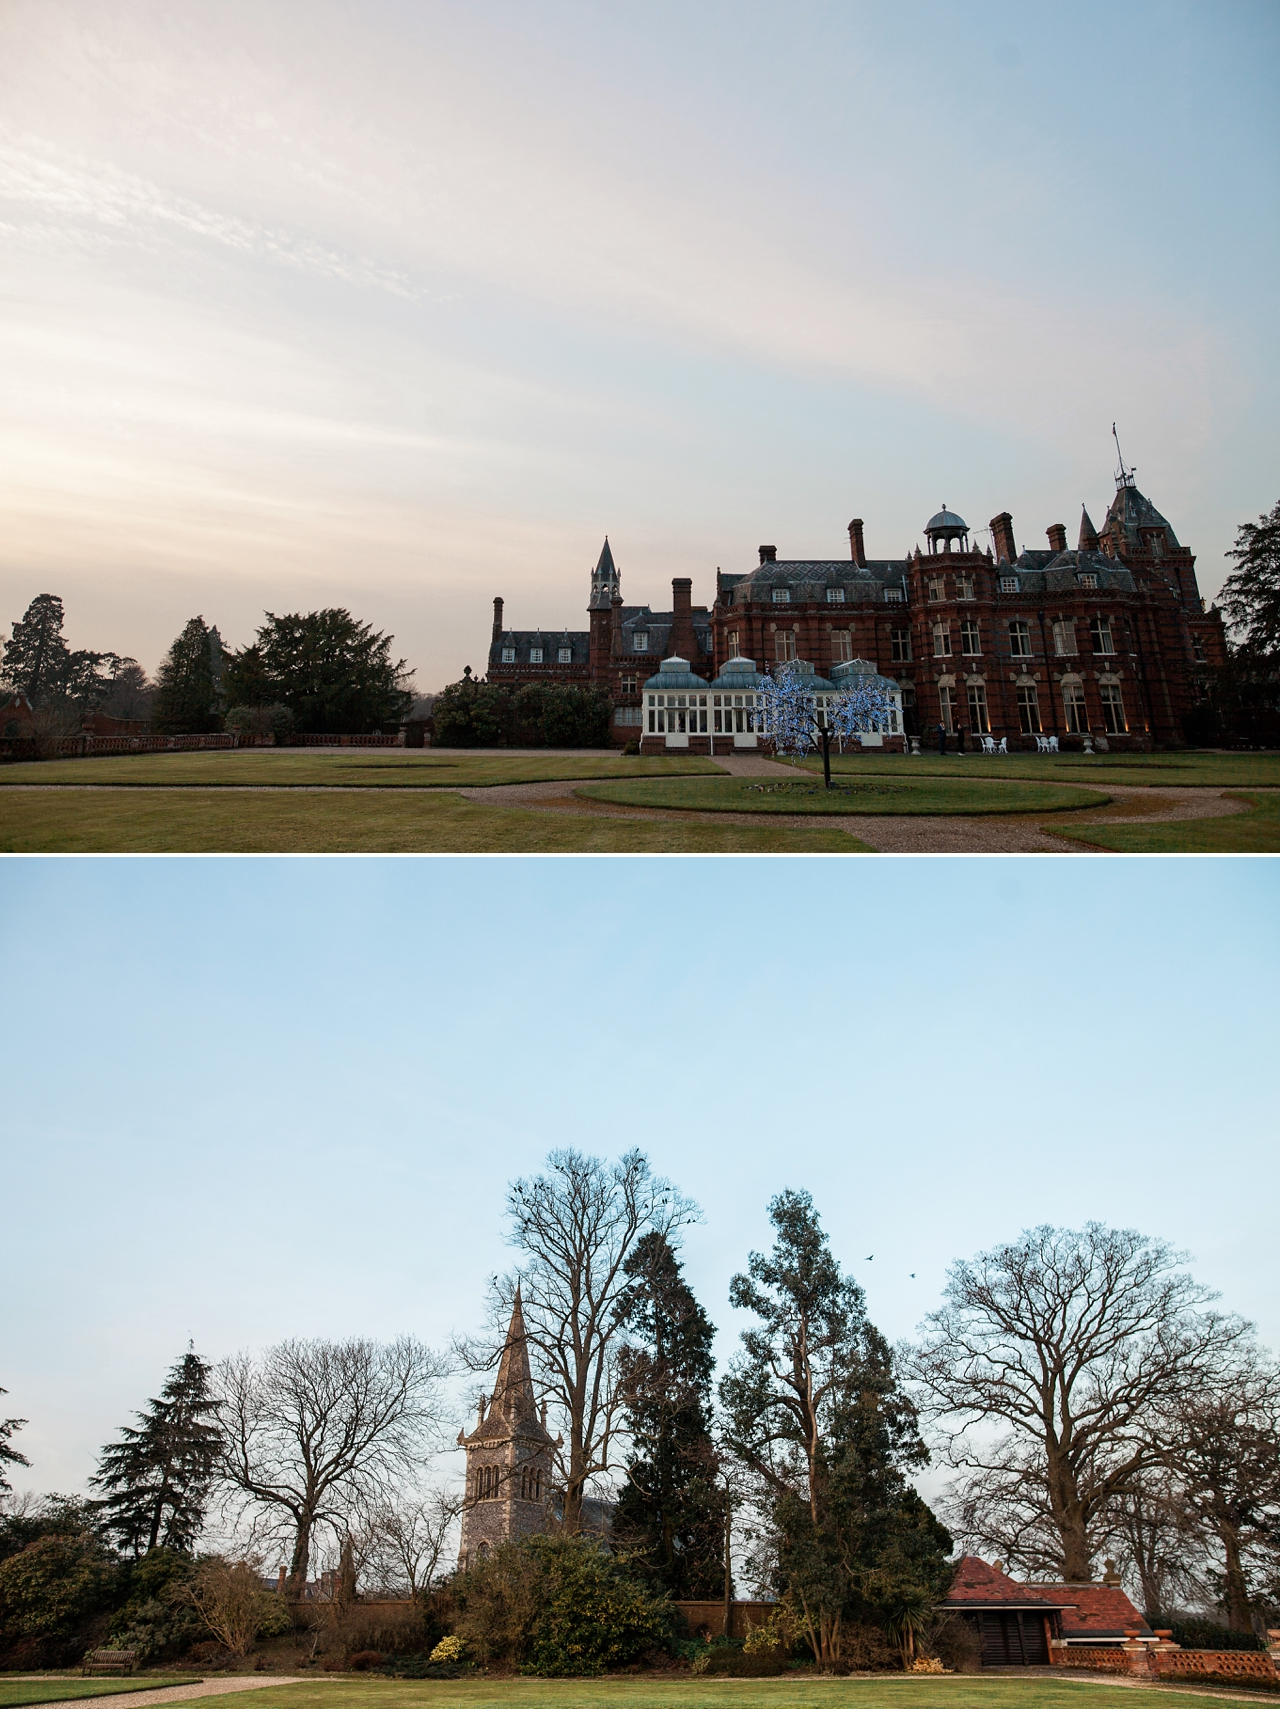 The Elvetham in the evening